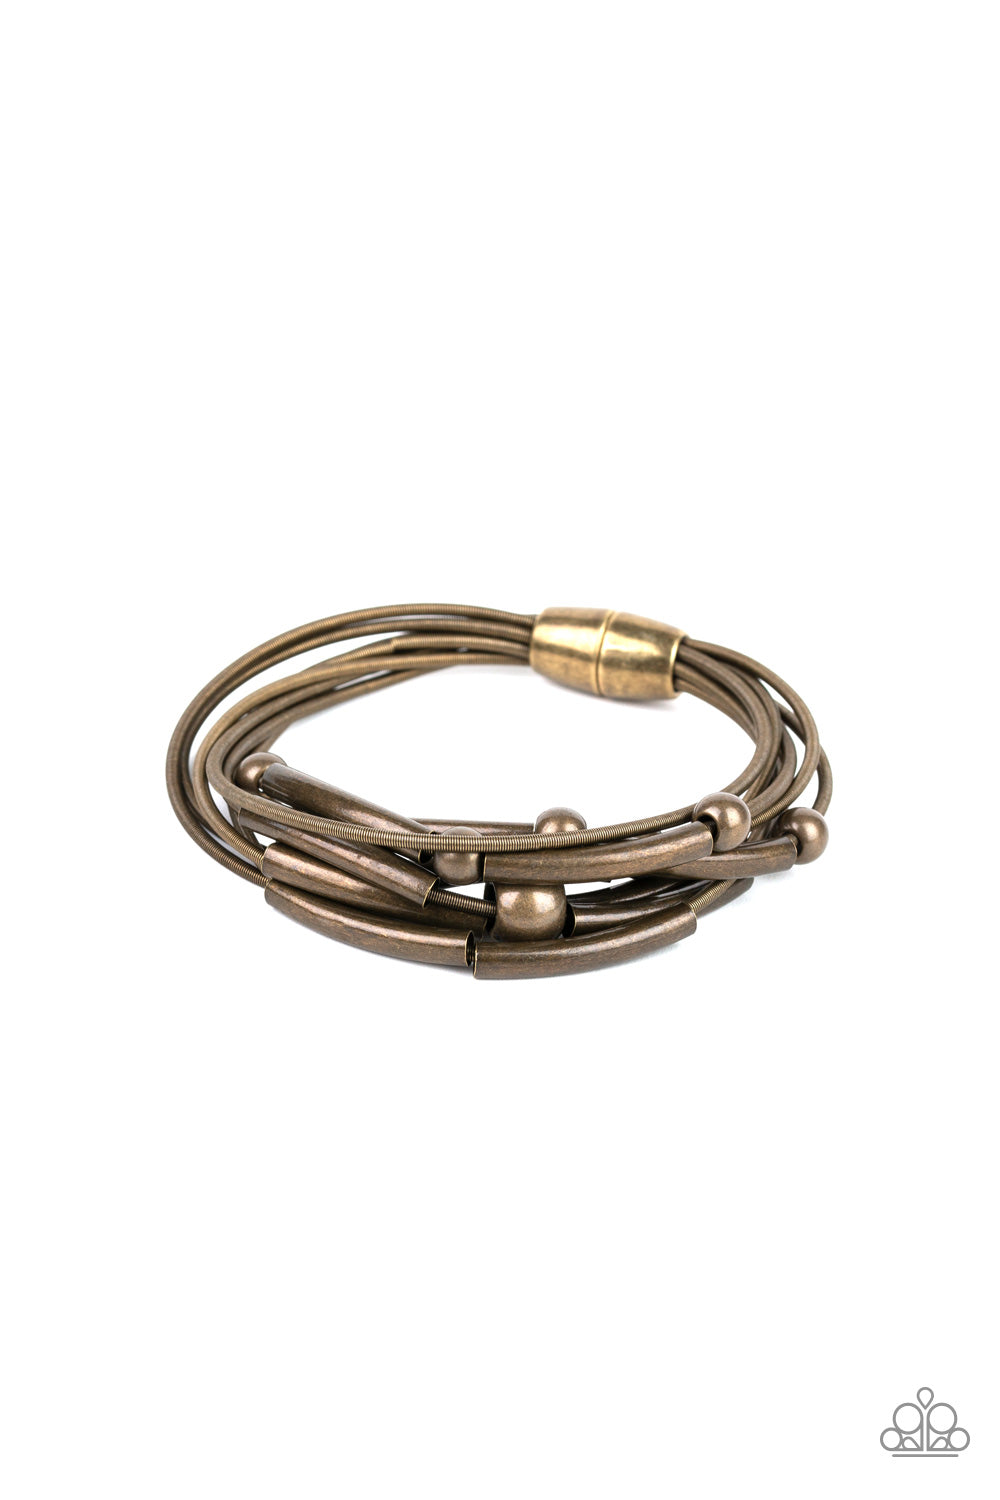 Basic Magnetics - Brass Paparazzi Jewelry Bracelet